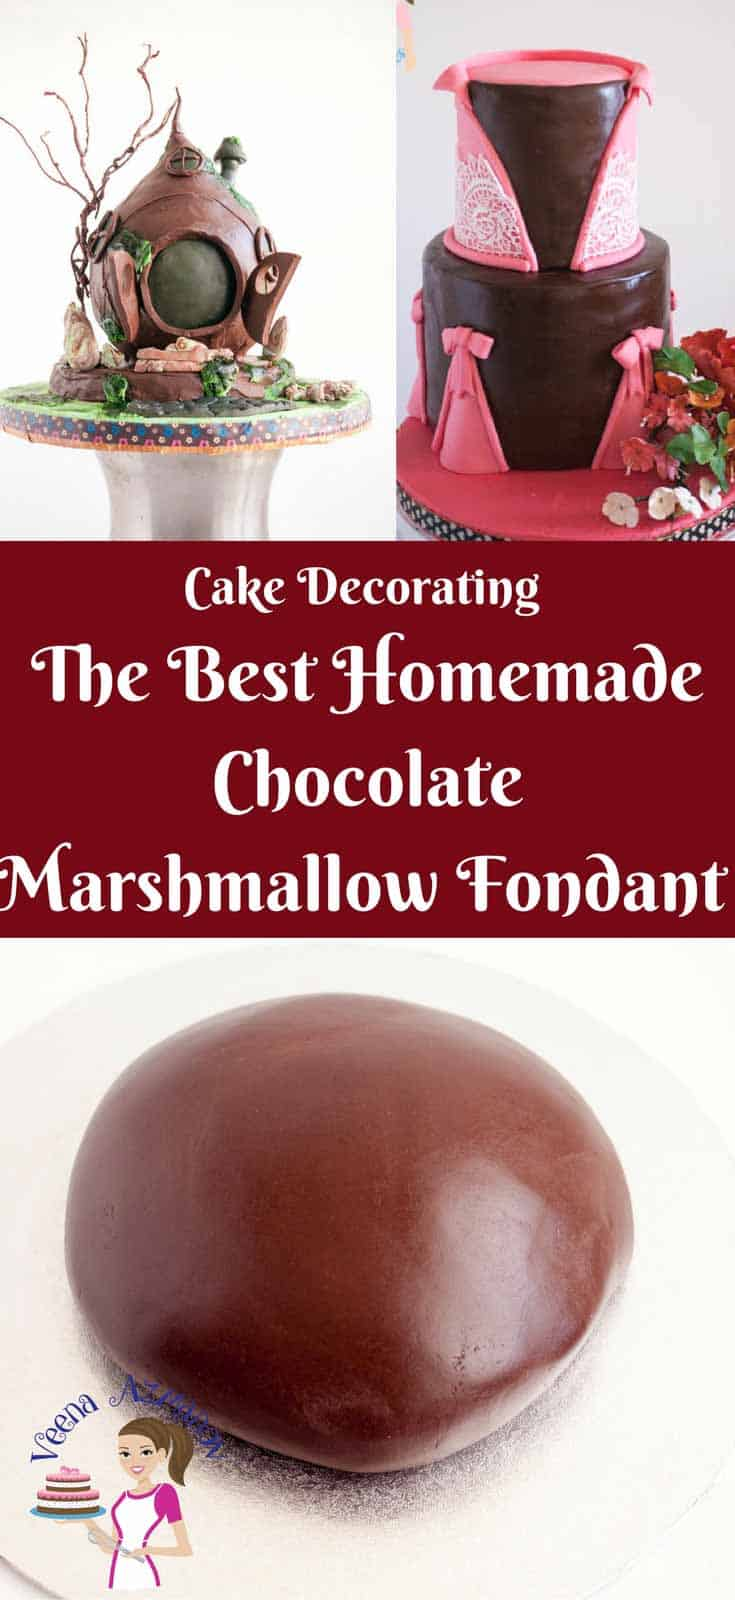 This homemade chocolate marshmallow fondant or Marshmallow Chocolate Fondant is a delicious sugar paste recipe with the taste of marshmallow and chocolate.  Made with real chocolate and cocoa powder for that rich chocolate taste. Weather you cover a cake, cookies or cupcakes this fondant is fun easy and quick to prepare